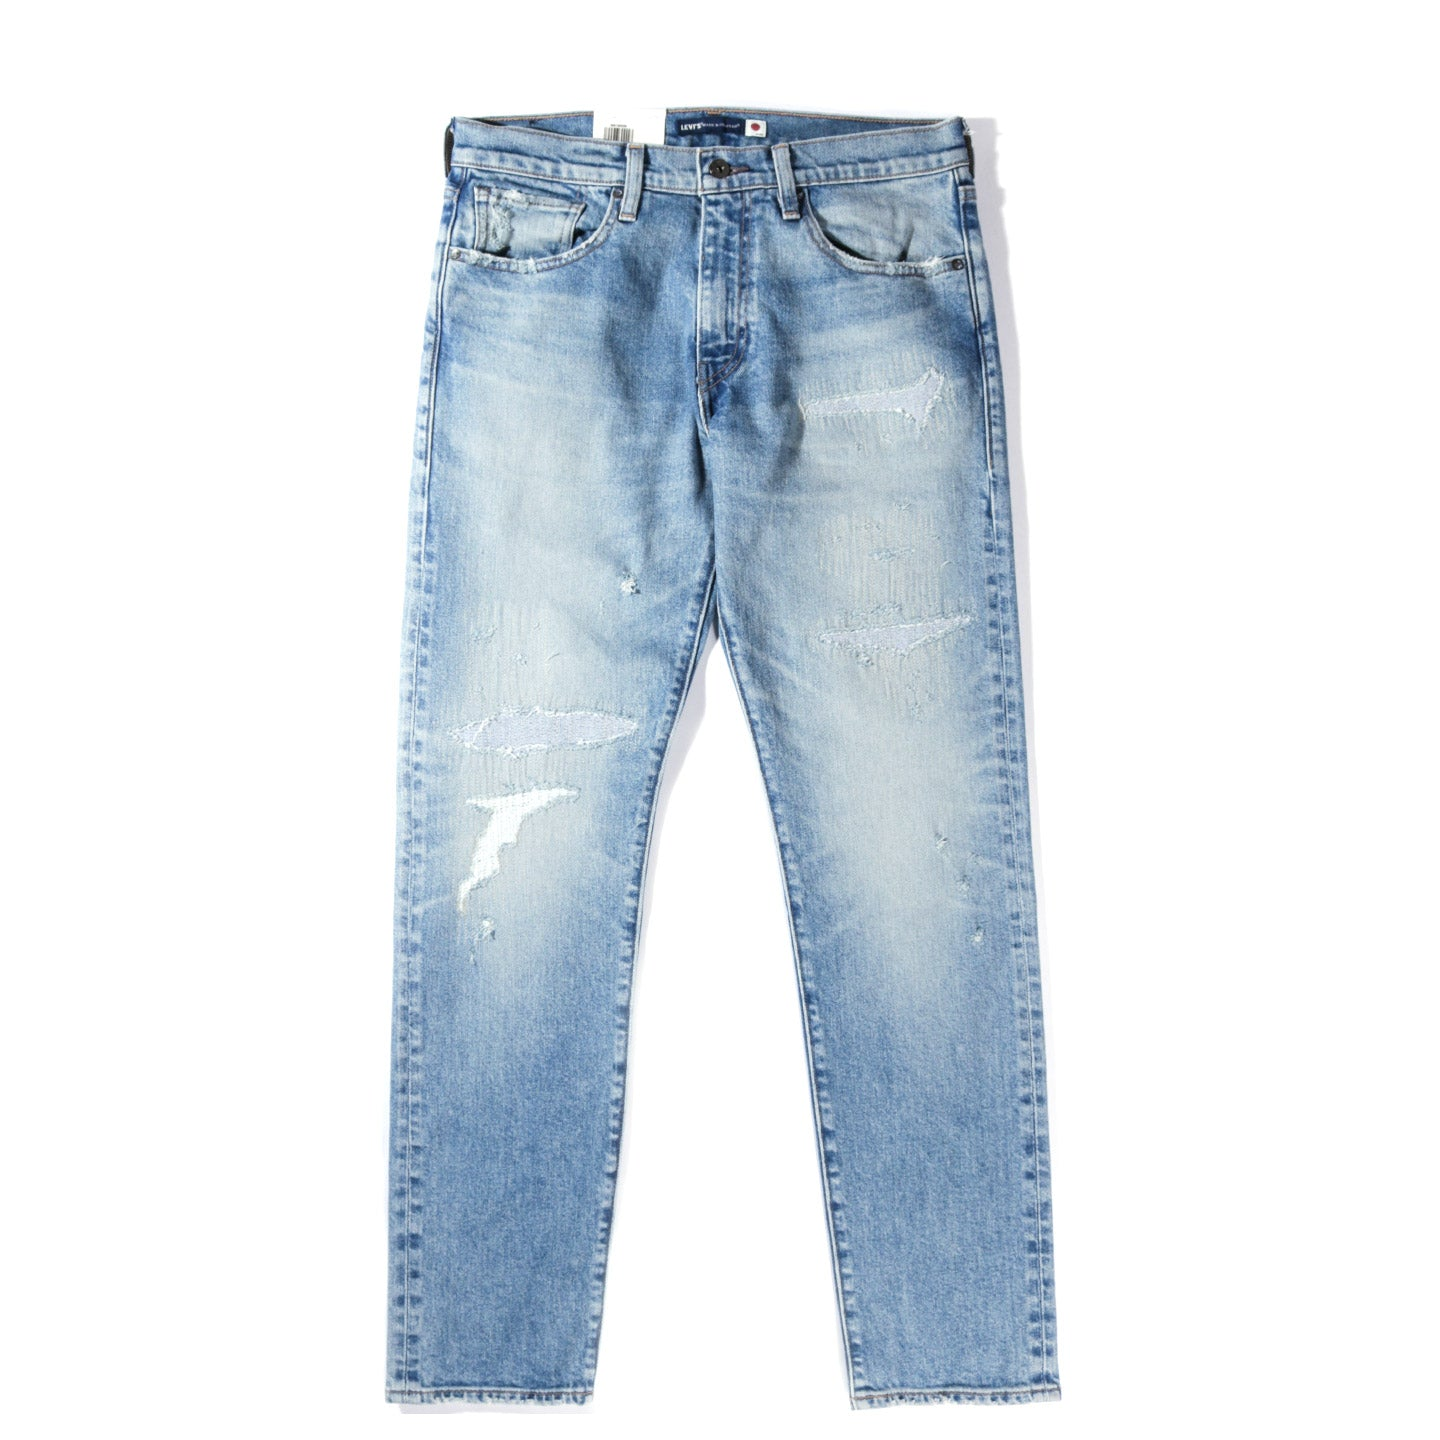 LEVI'S MADE & CRAFTED 502 MIJ NADARE